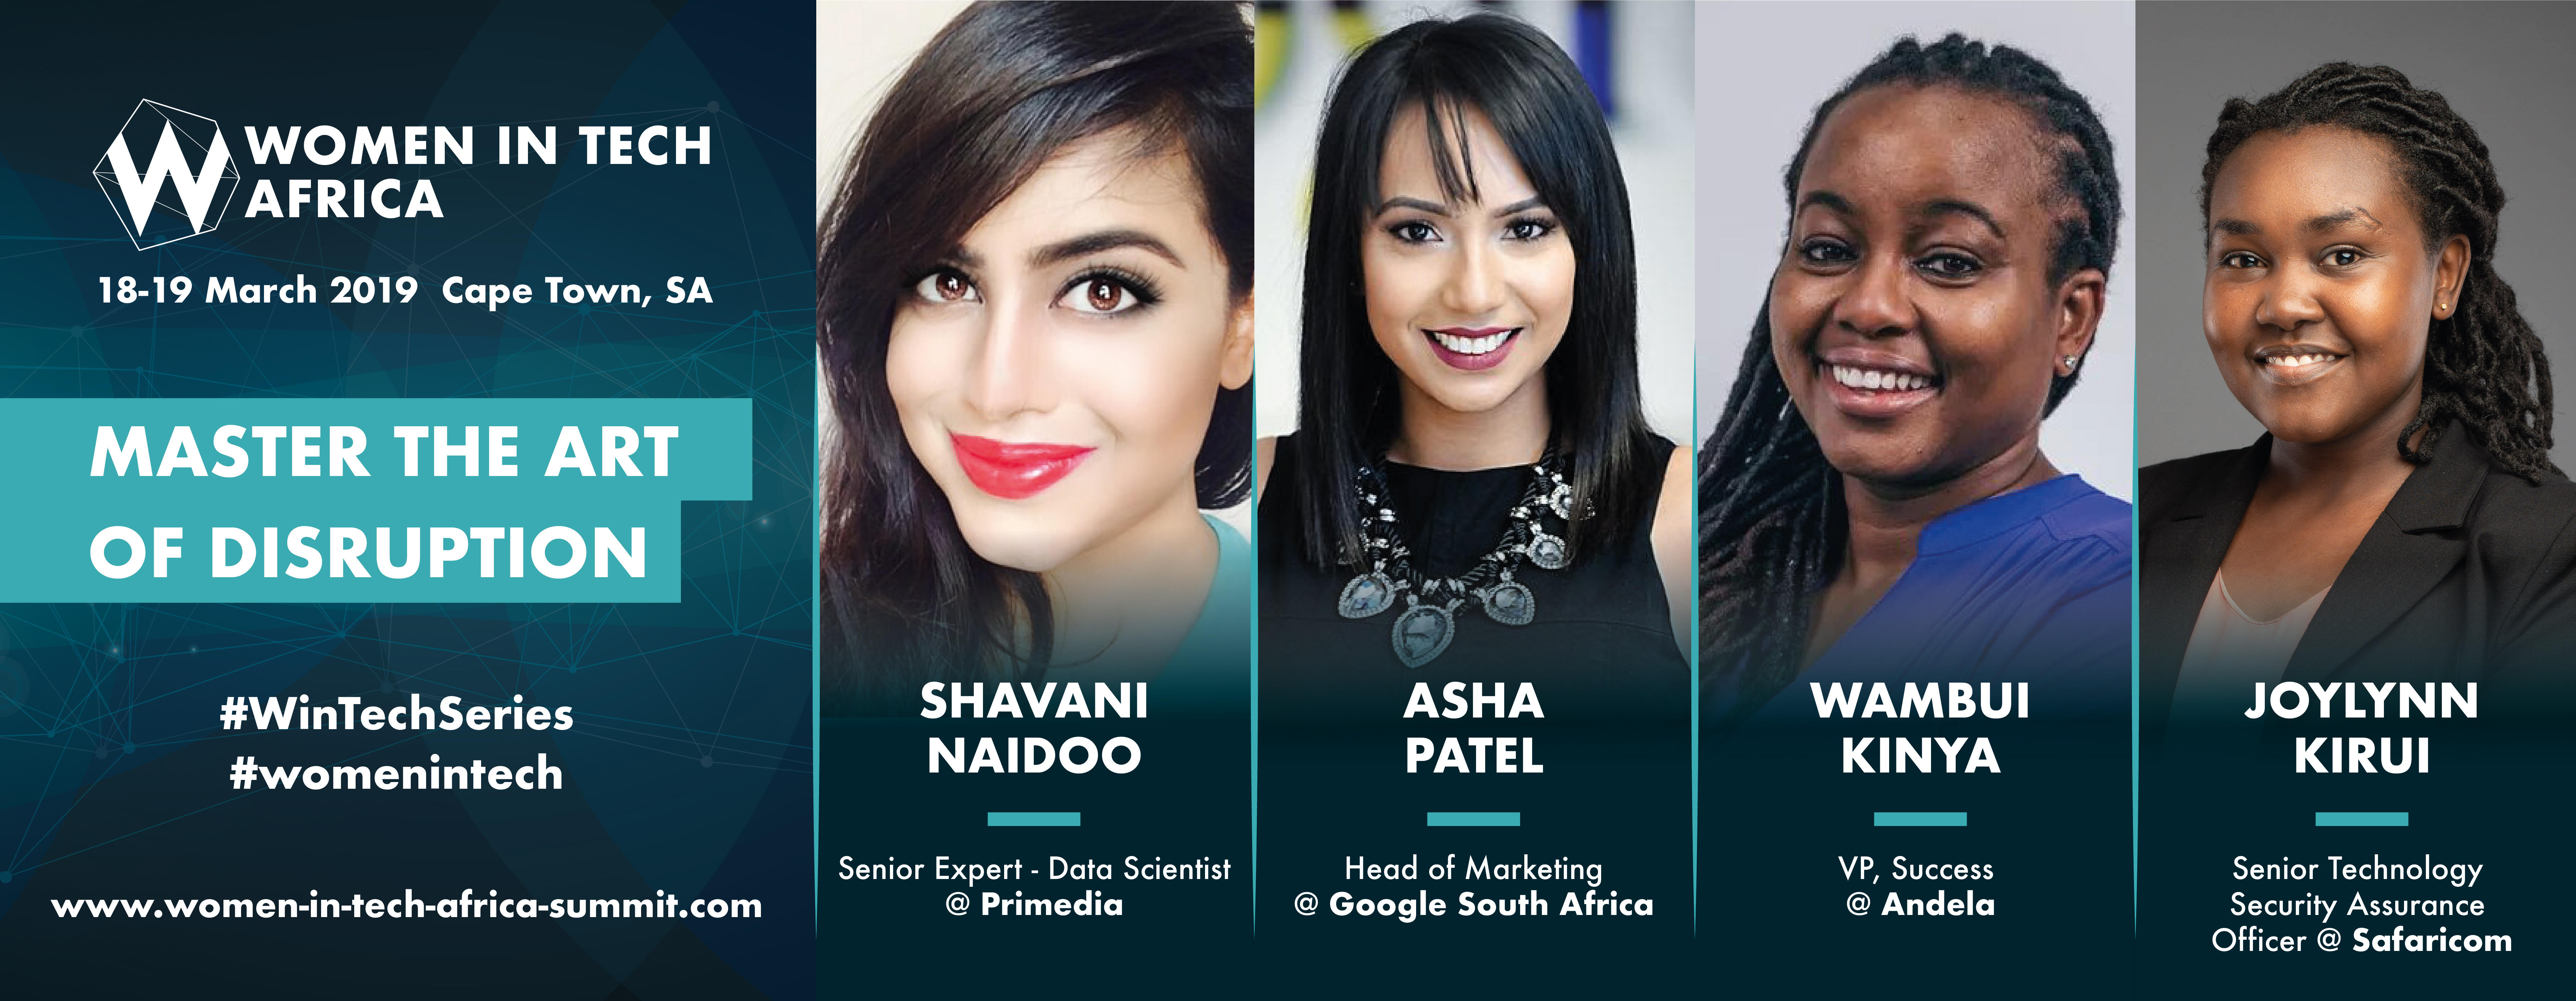 Women in Tech Africa 2019: 4 sessions and what you'll learn